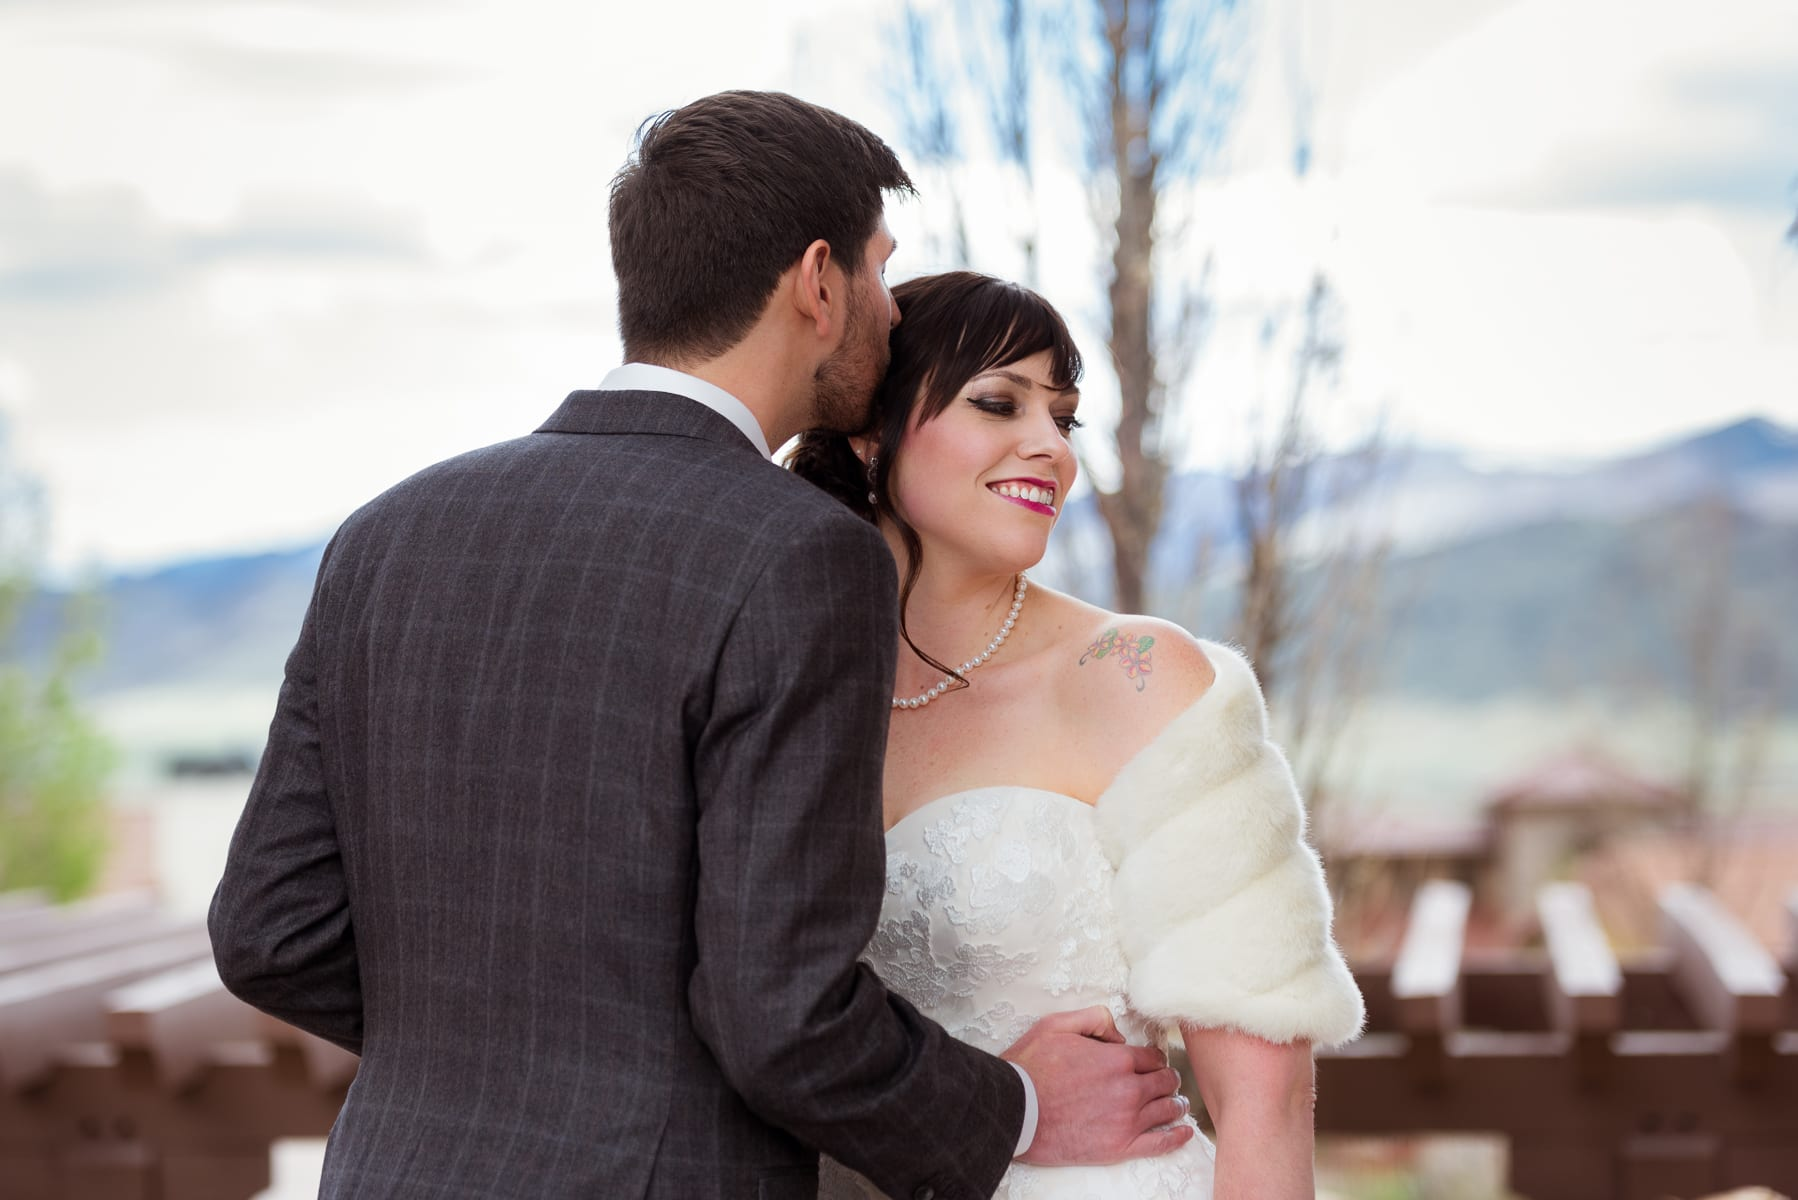 Elisabeth & Gavin | The Retreat at Solterra Wedding Photography | From the Hip Photo